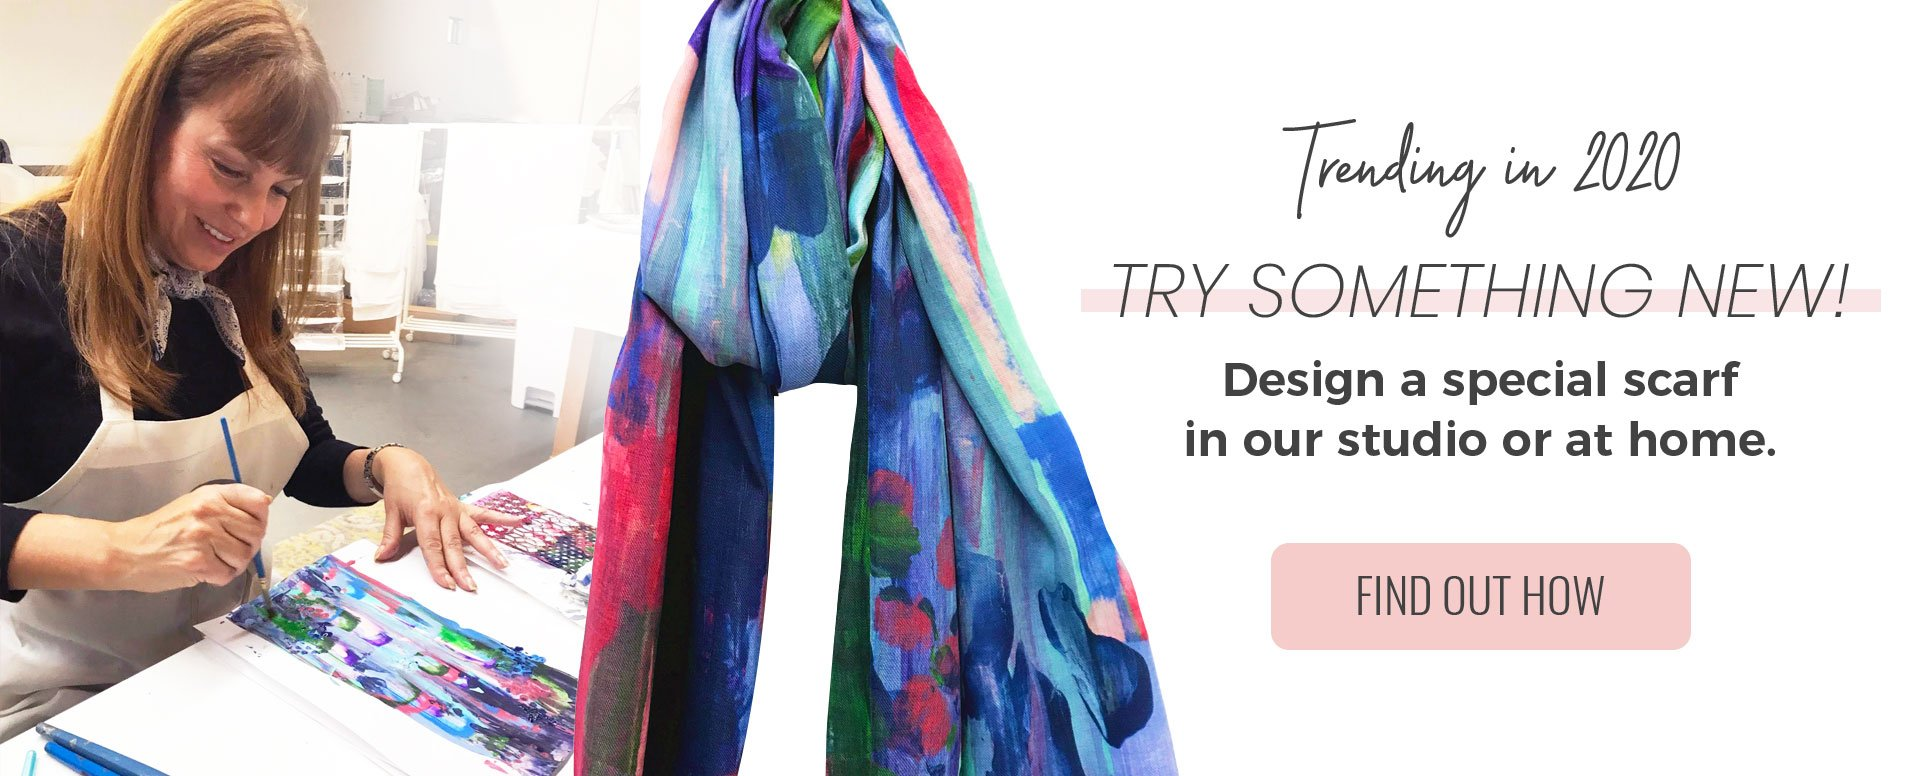 It's Scarf Season - Come into the studio and design your one-of-a-kind-scarf!